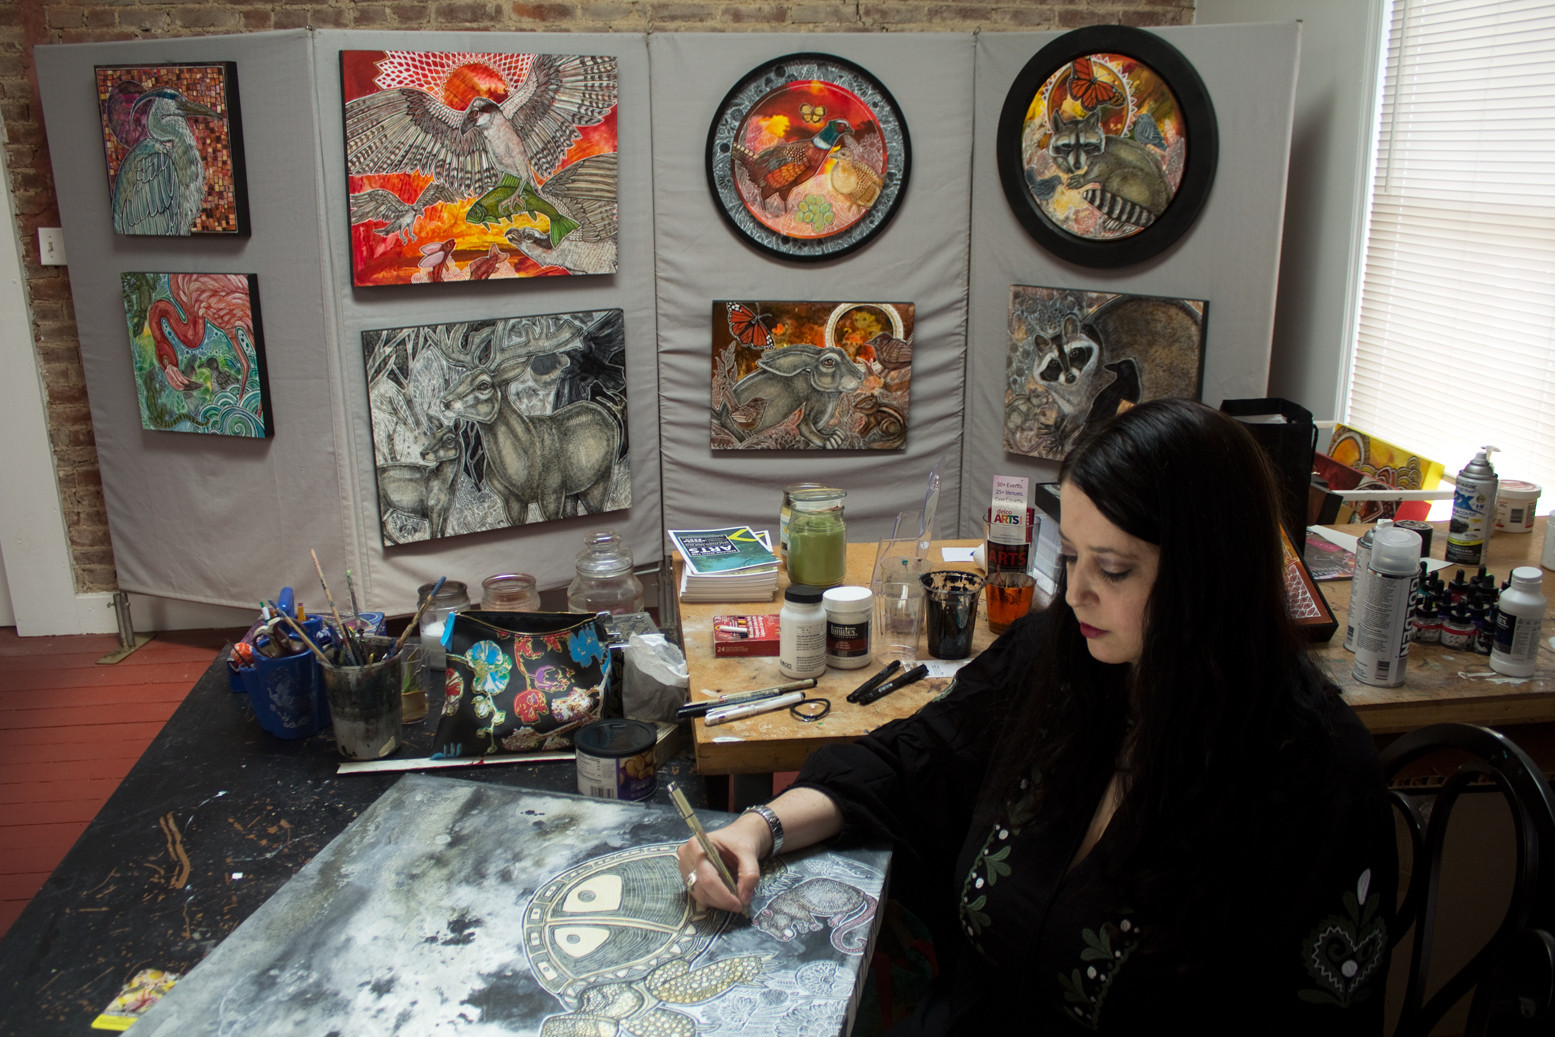 Artist Lynnette Shelley in her Norristown, PA, studio